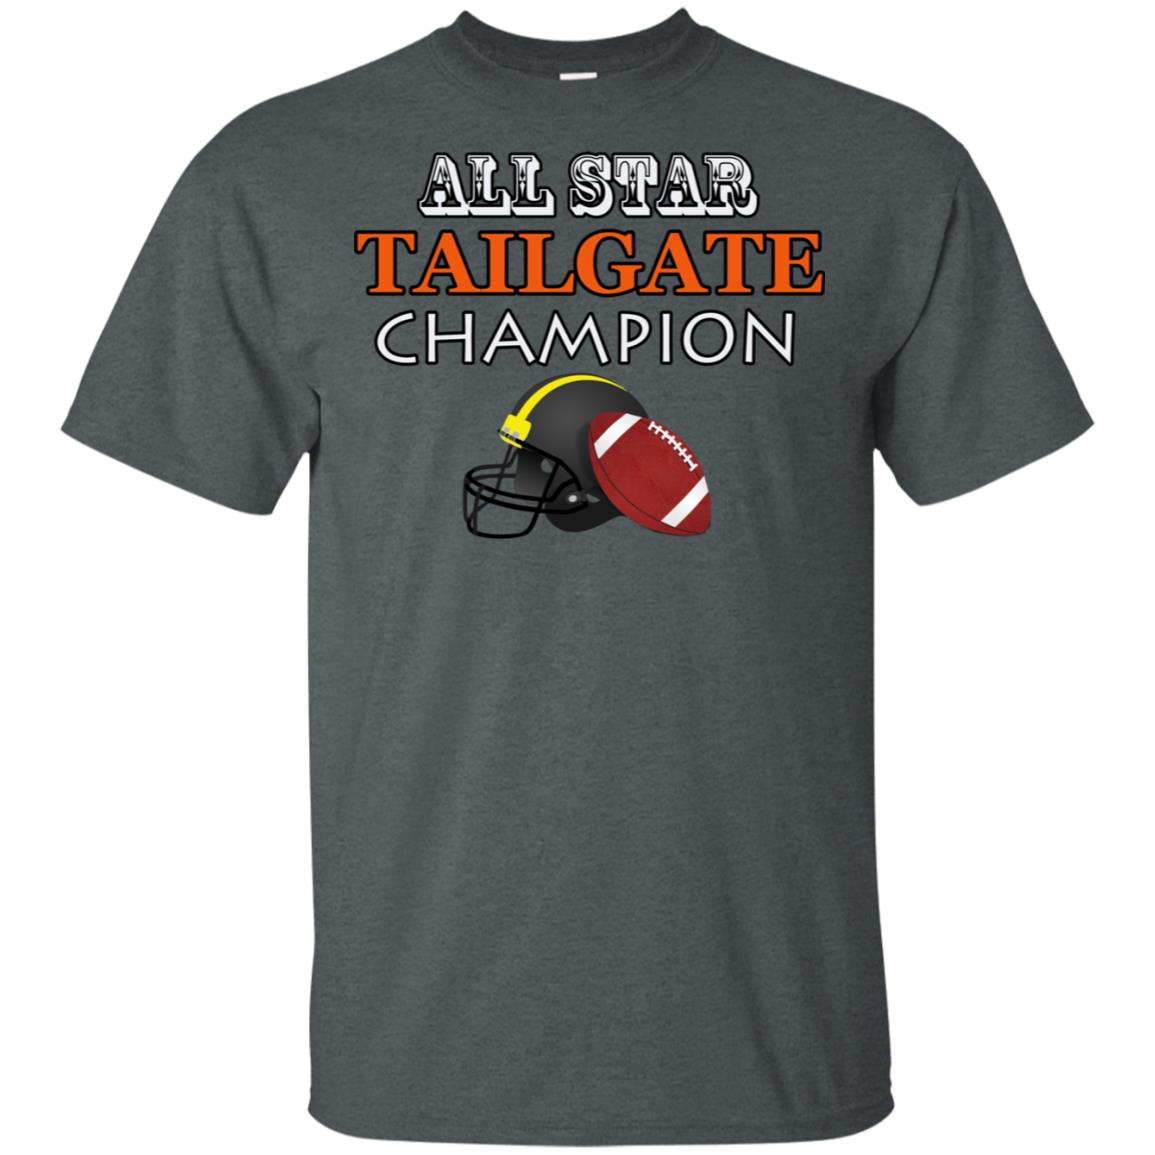 All Star Tailgate Champion Unisex Short Sleeve